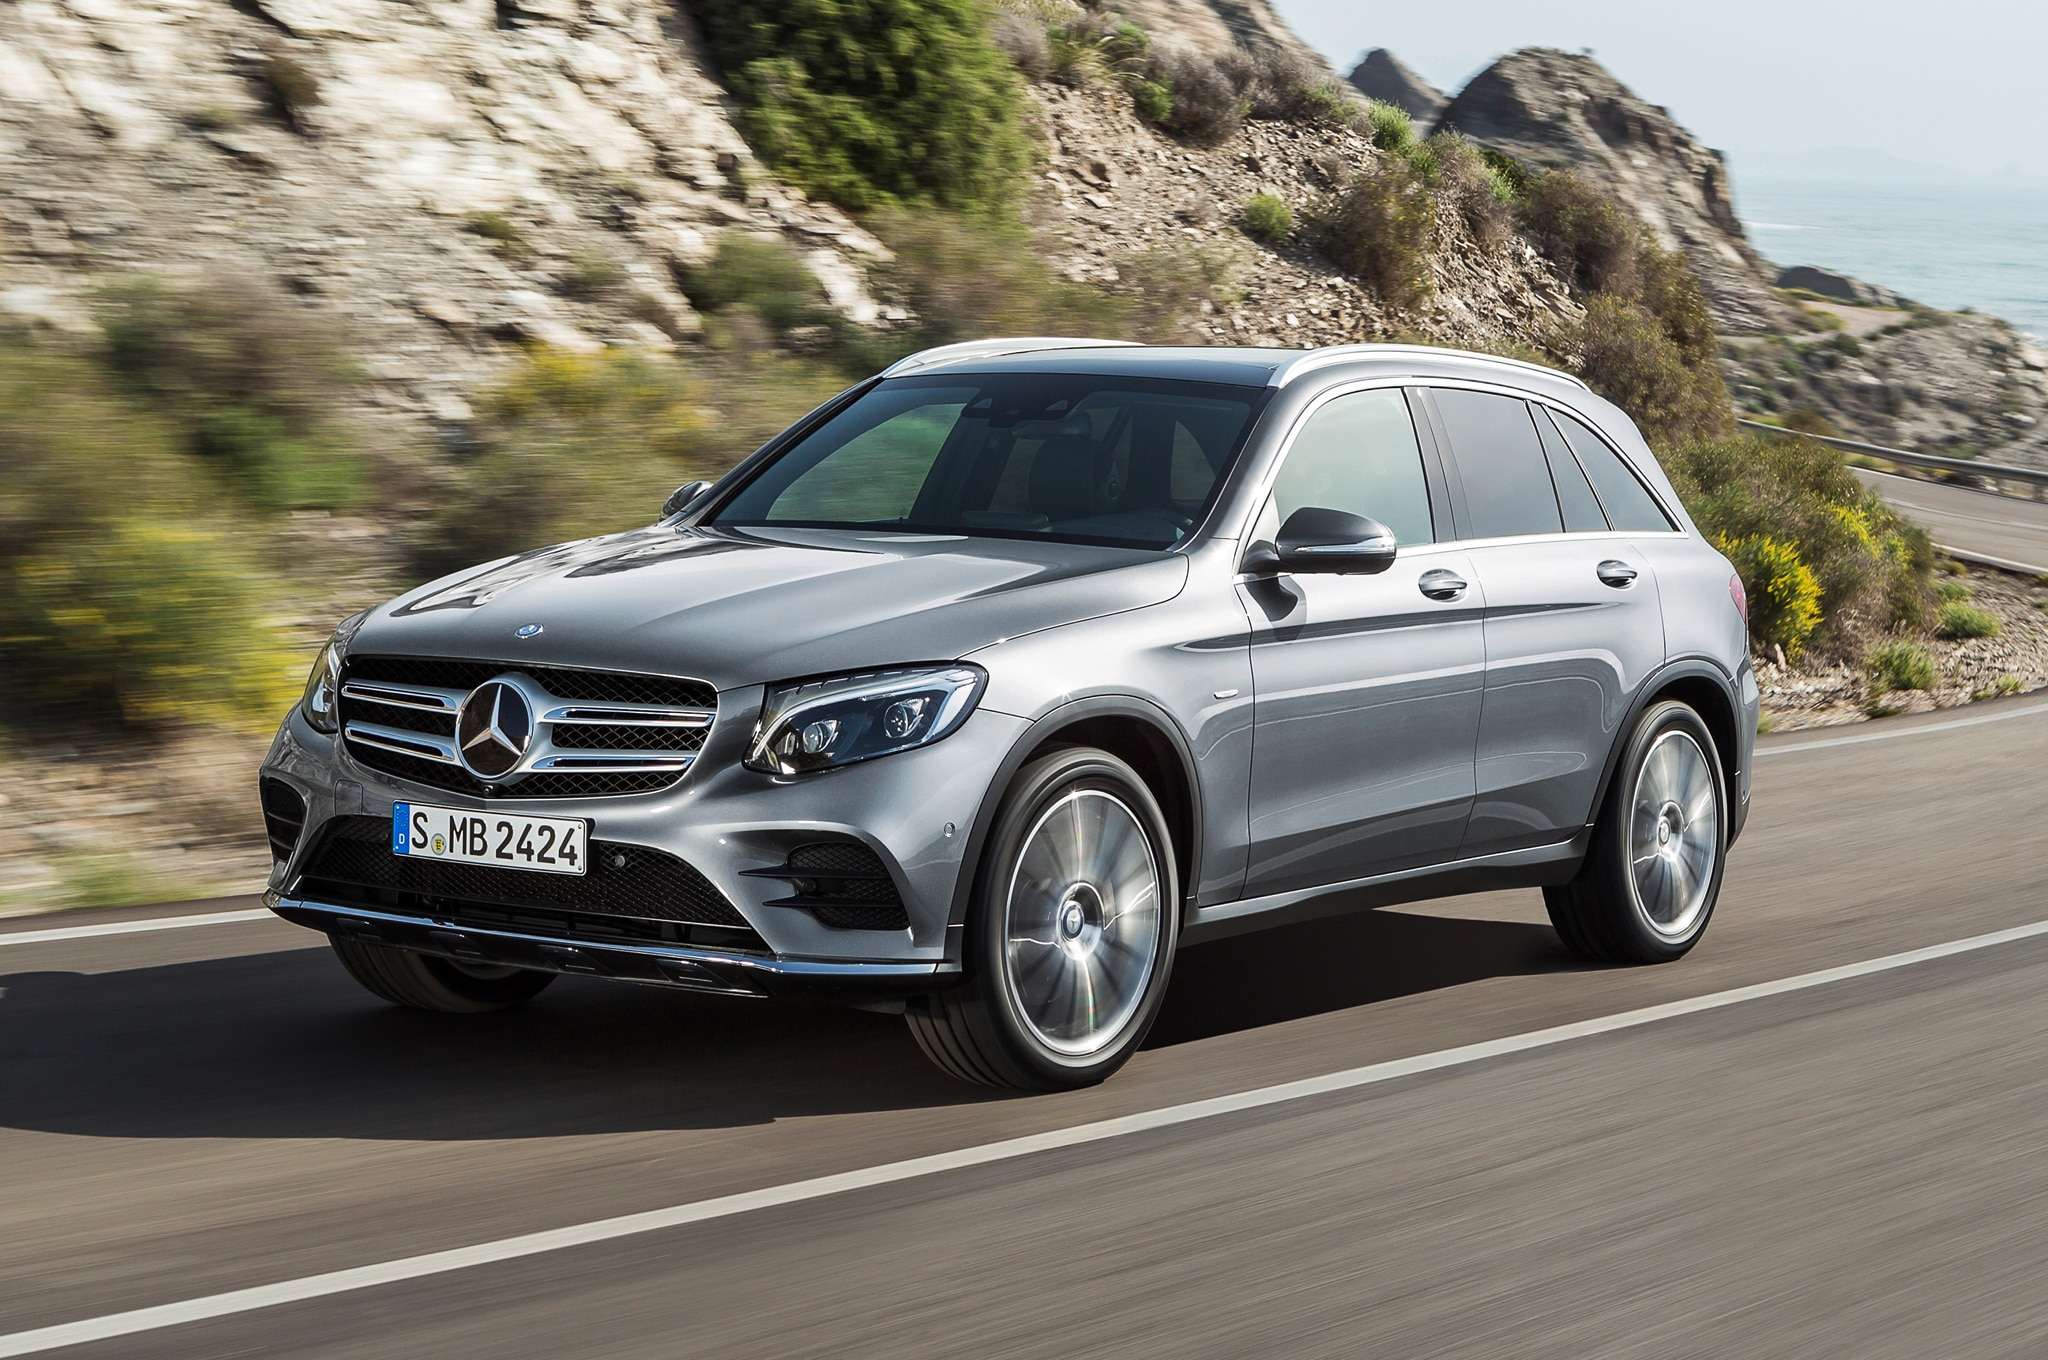 2016 Mercedes-Benz GLC-Class Debuts, Replaces GLK